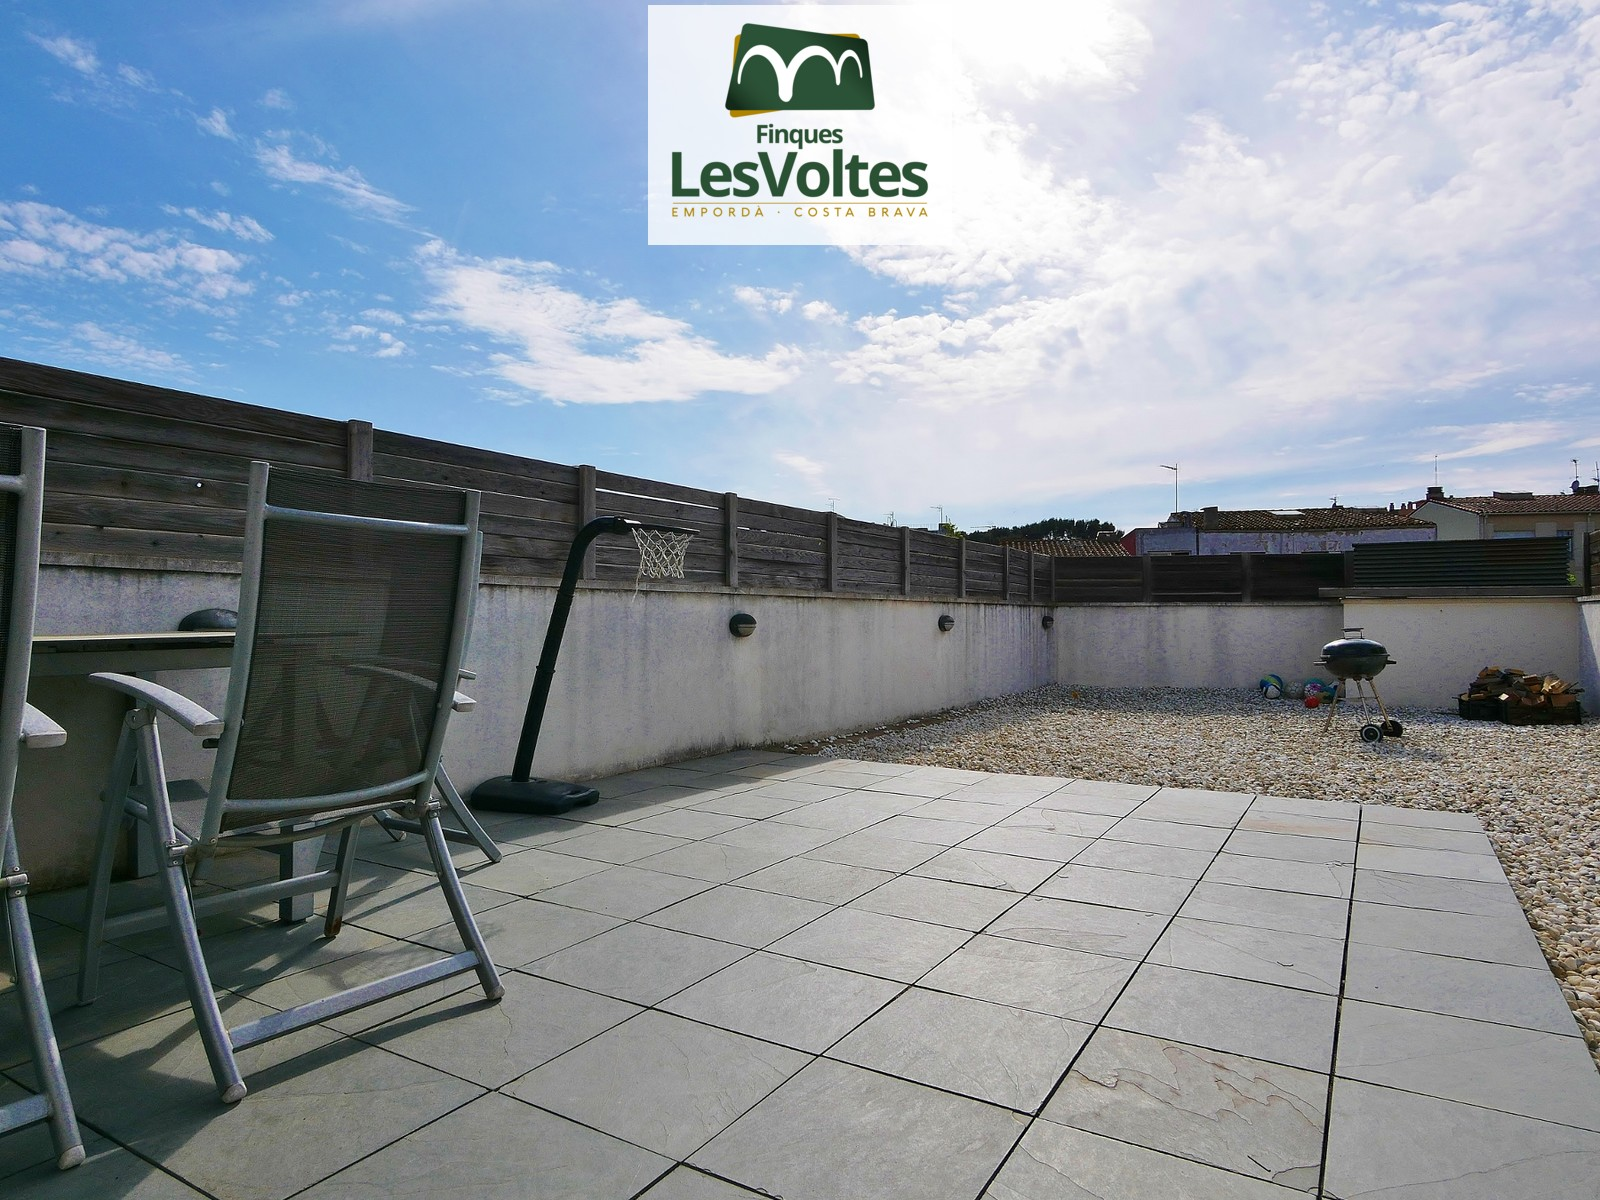 MAGNIFICENT 85M2 APARTMENT WITH A 62M2 TERRACE, PARKING AND STORAGE ROOM IN A SMALL COMMUNITY NEAR THE CENTER.